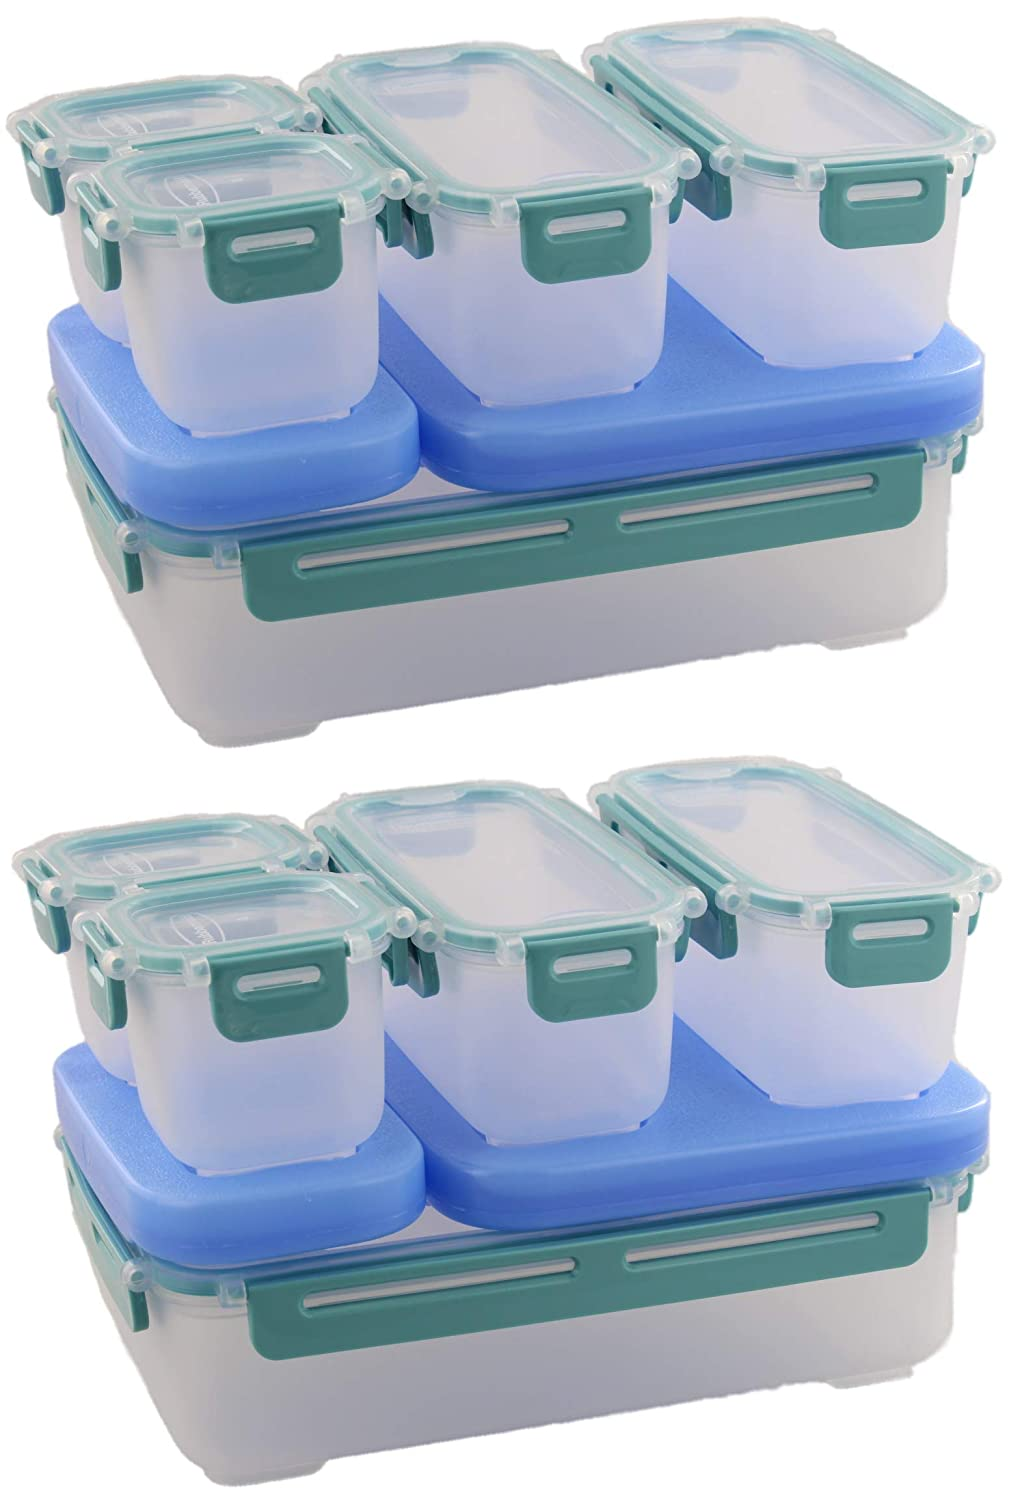 Rubbermaid LunchBlox Leak Proof Large Entree Kit with Side and Snack Containers, 2pk - BPA-free, Stackable Lunch Box with Airtight Seal and Durable Latches - Great for Home, School, On the Go - Blue